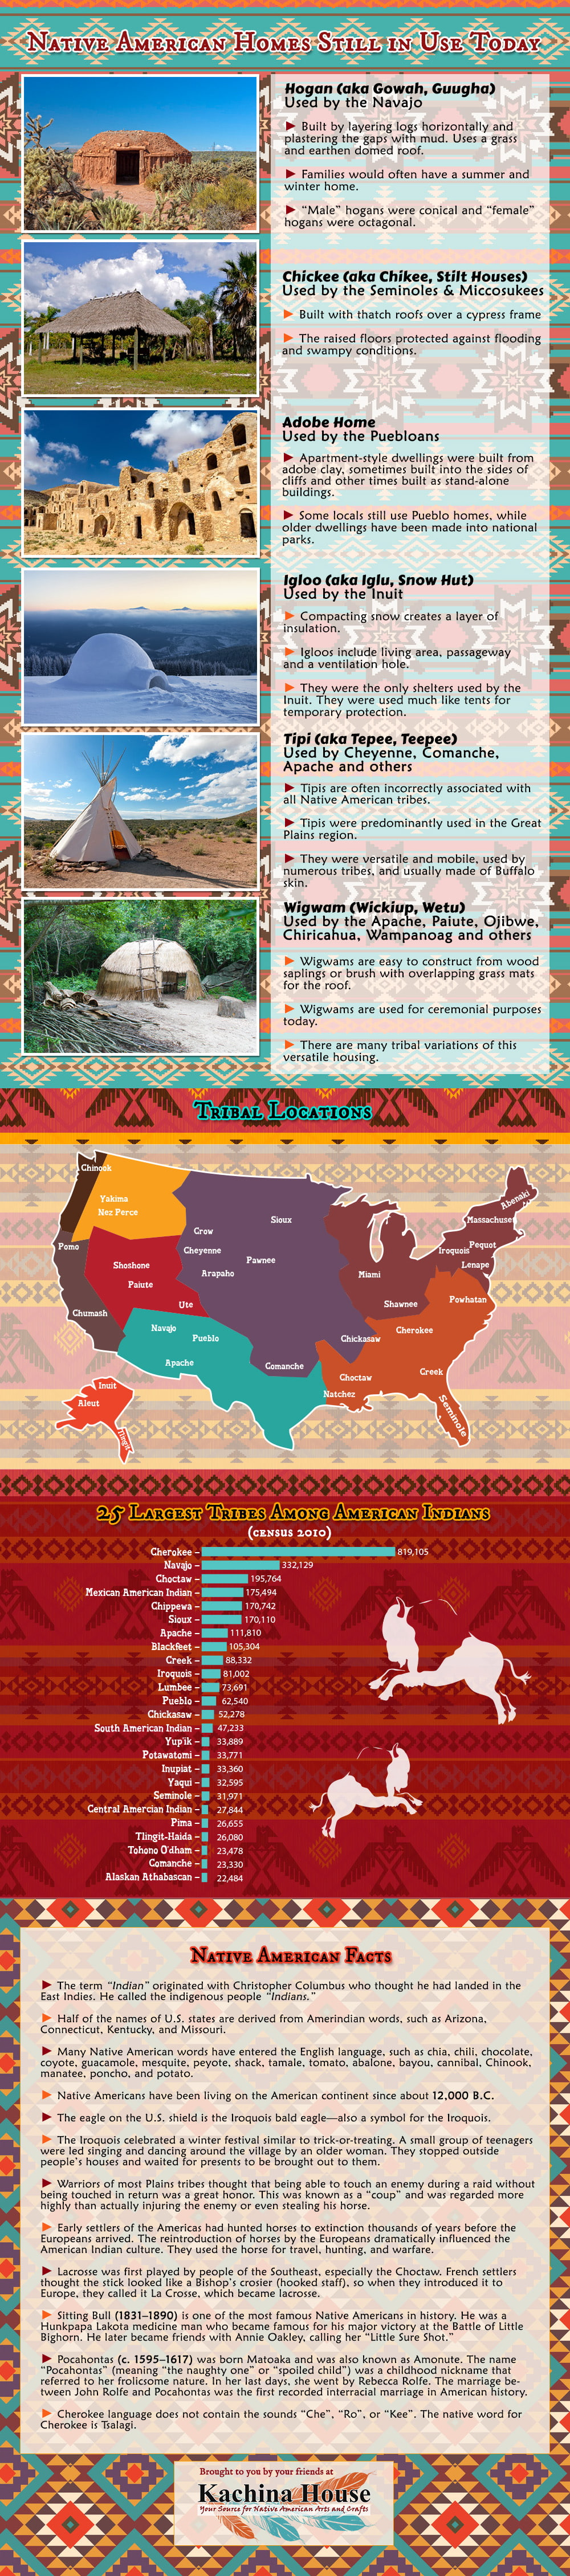 Native American Homes Still in Use Today